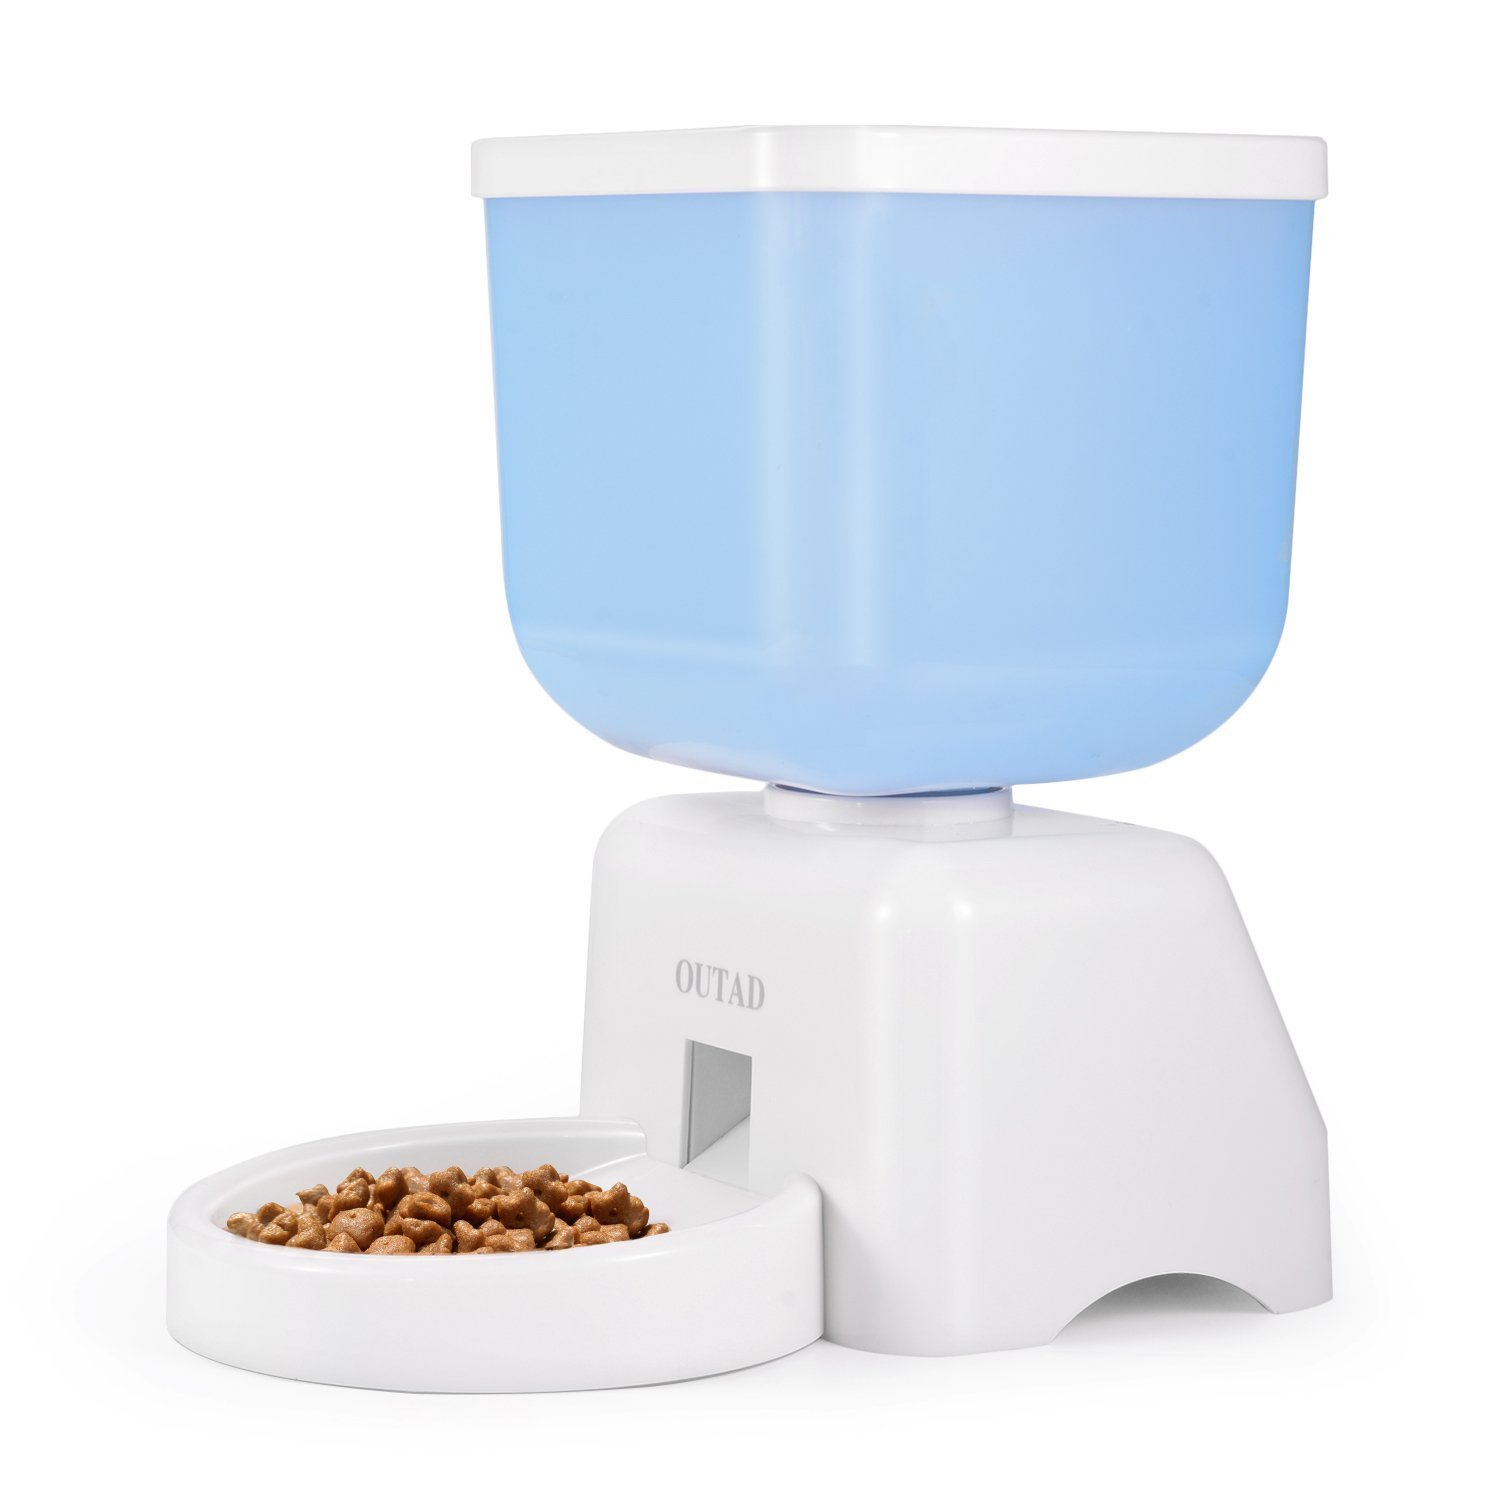 LCD Dispaly 5 Liters Capacity Pet Automatic Feeder with Voice Recorder and Timer Programmable for Medium and Small Animals Dogs and Cats Bucket Feeder by NICEAO